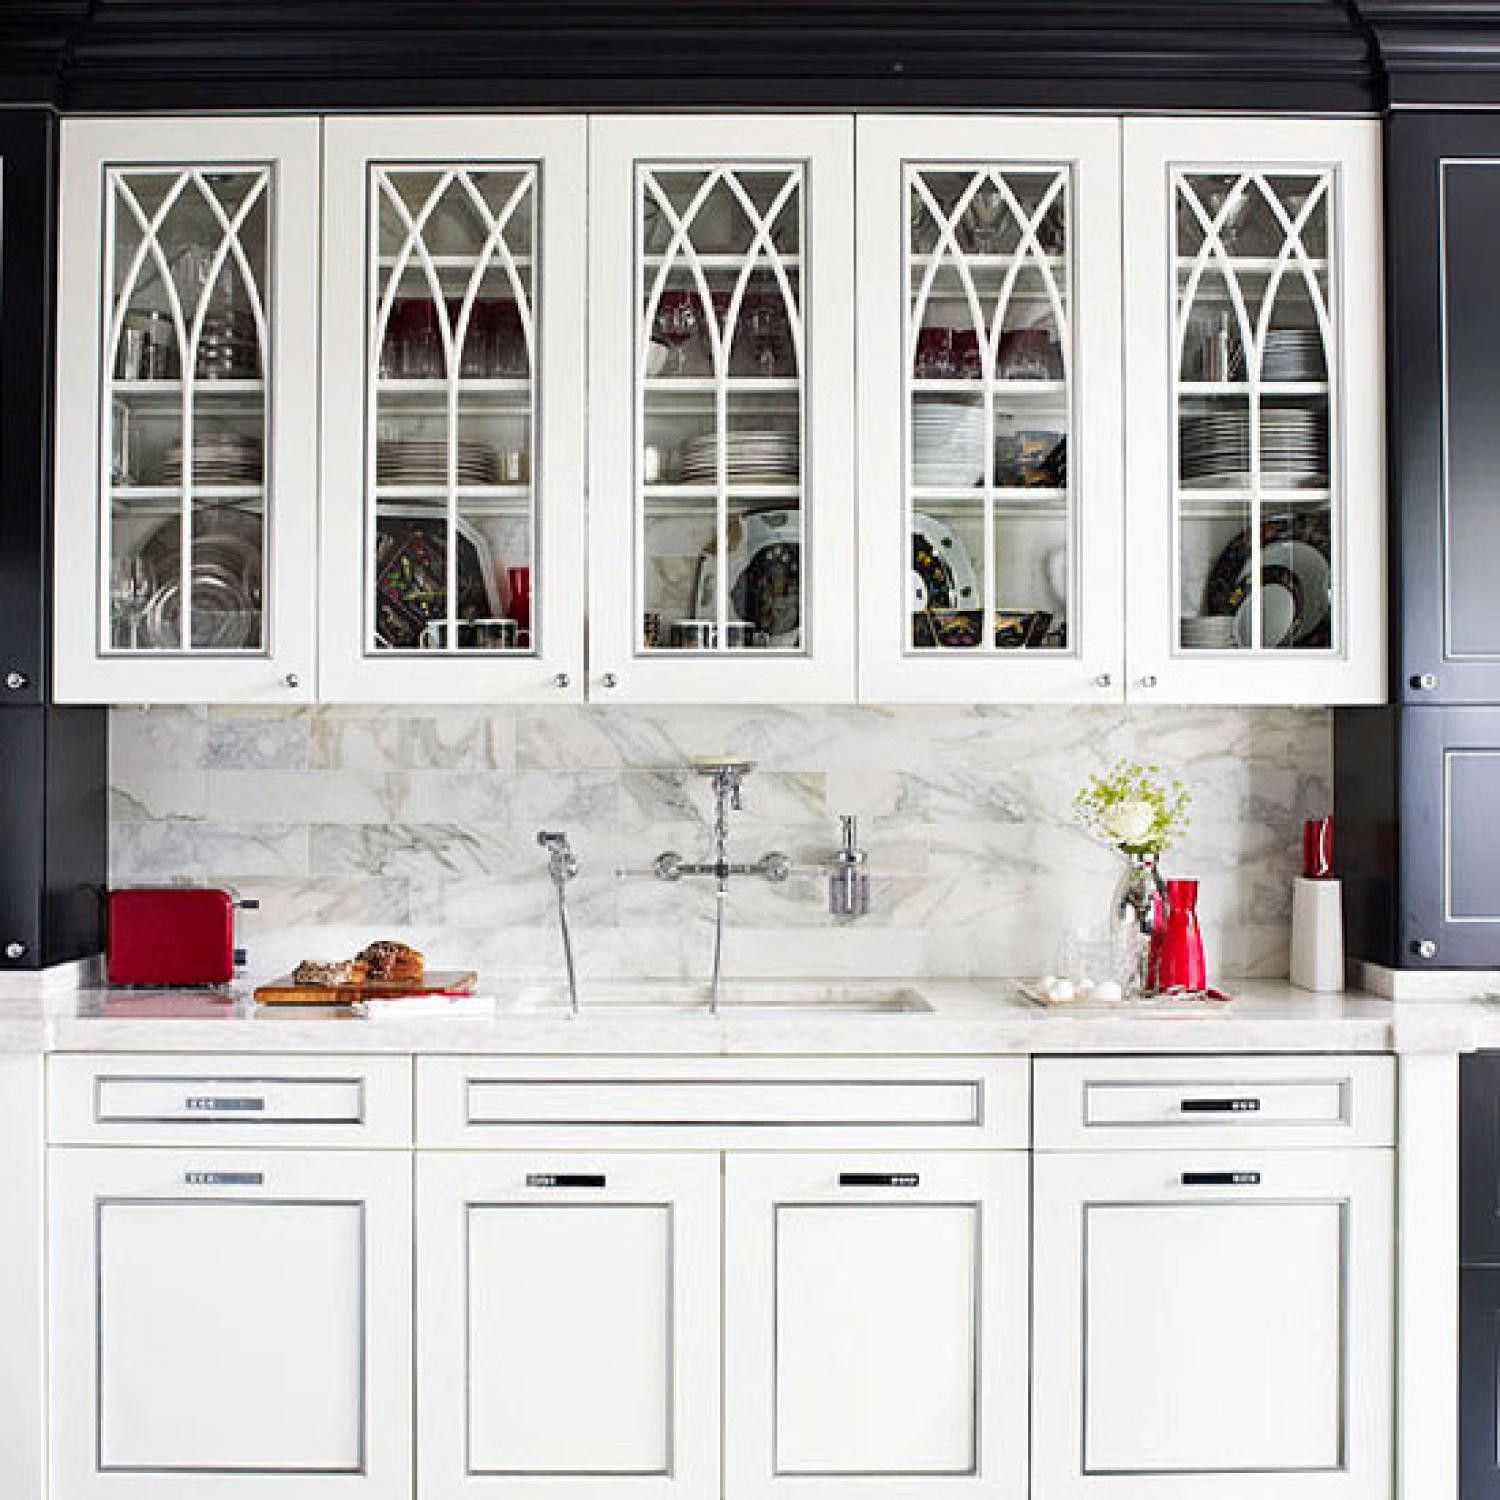 Best ideas about Kitchen Cabinets Doors . Save or Pin Distinctive Kitchen Cabinets with Glass Front Doors Now.